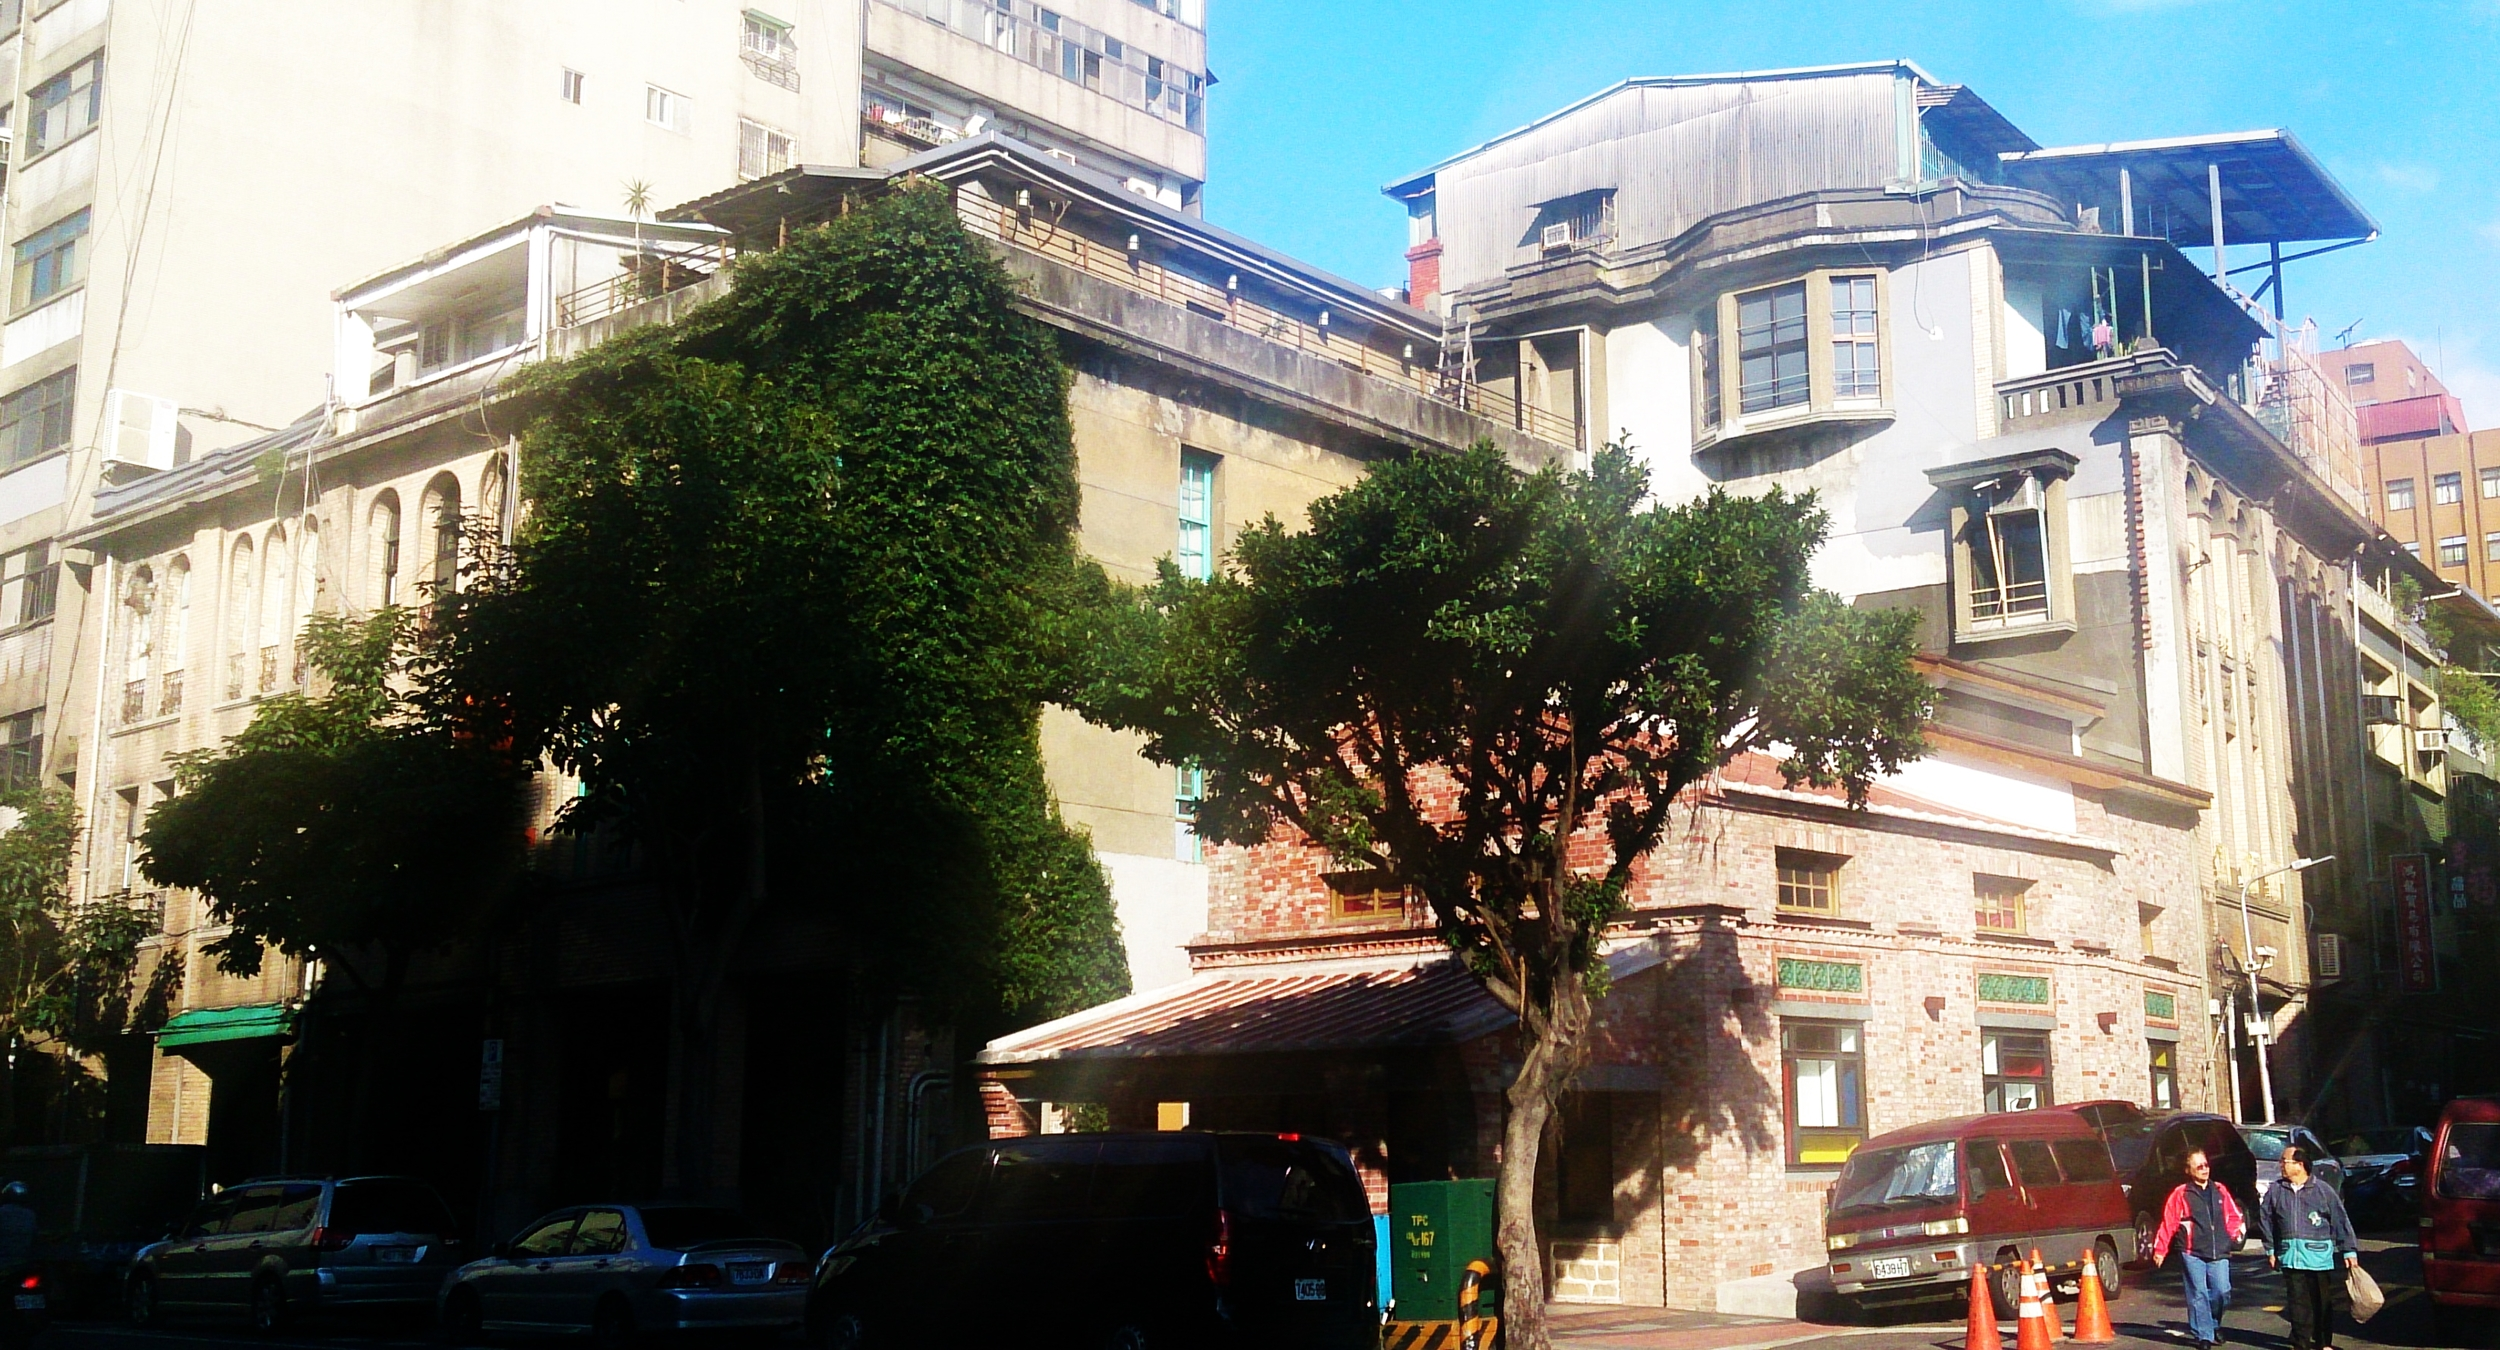 The Lin Puppet Museum is the building covered in vegetation.